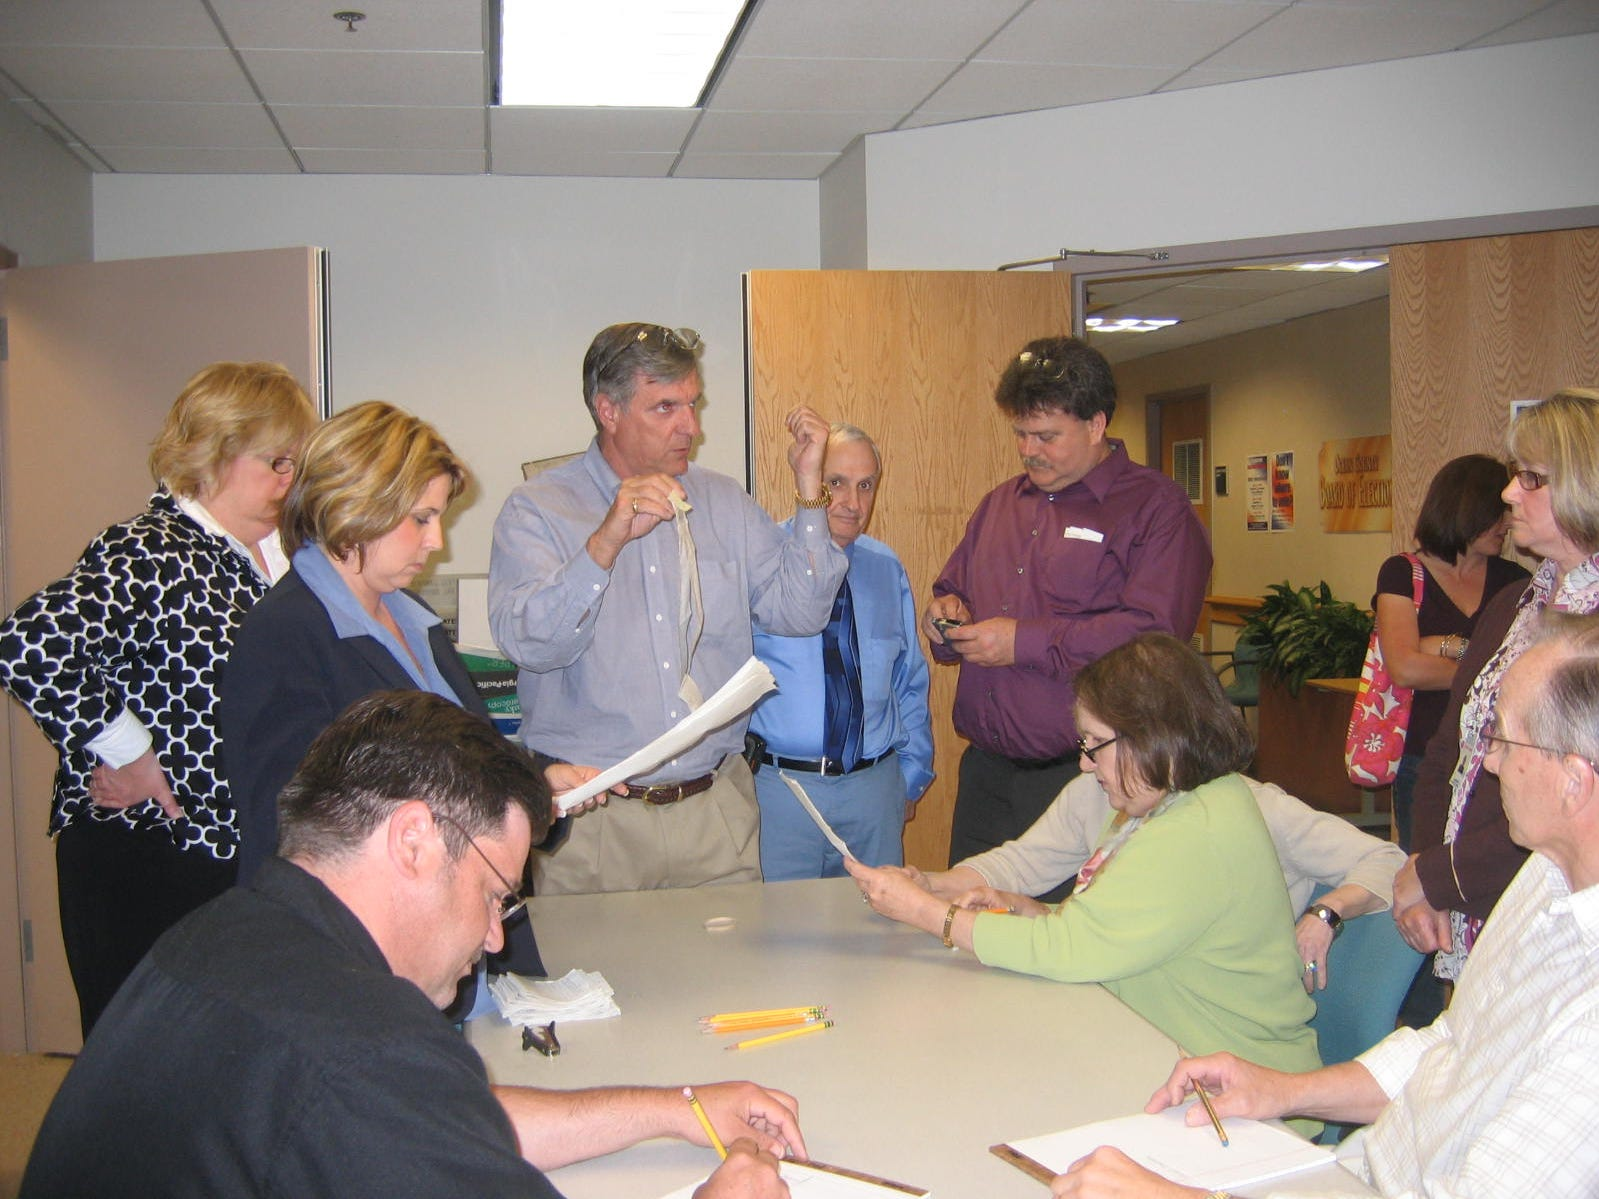 Times-Beacon photo by Paula Scully 5/12/09  George Gilmore, center, standing, and employees of the Ocean County Board of Elections, go over procedure for a vote recount May 12 in recount of write-in votes for the two top vote getters for a vacant three-year seat in the Little Egg Harbor School District elections April 21.